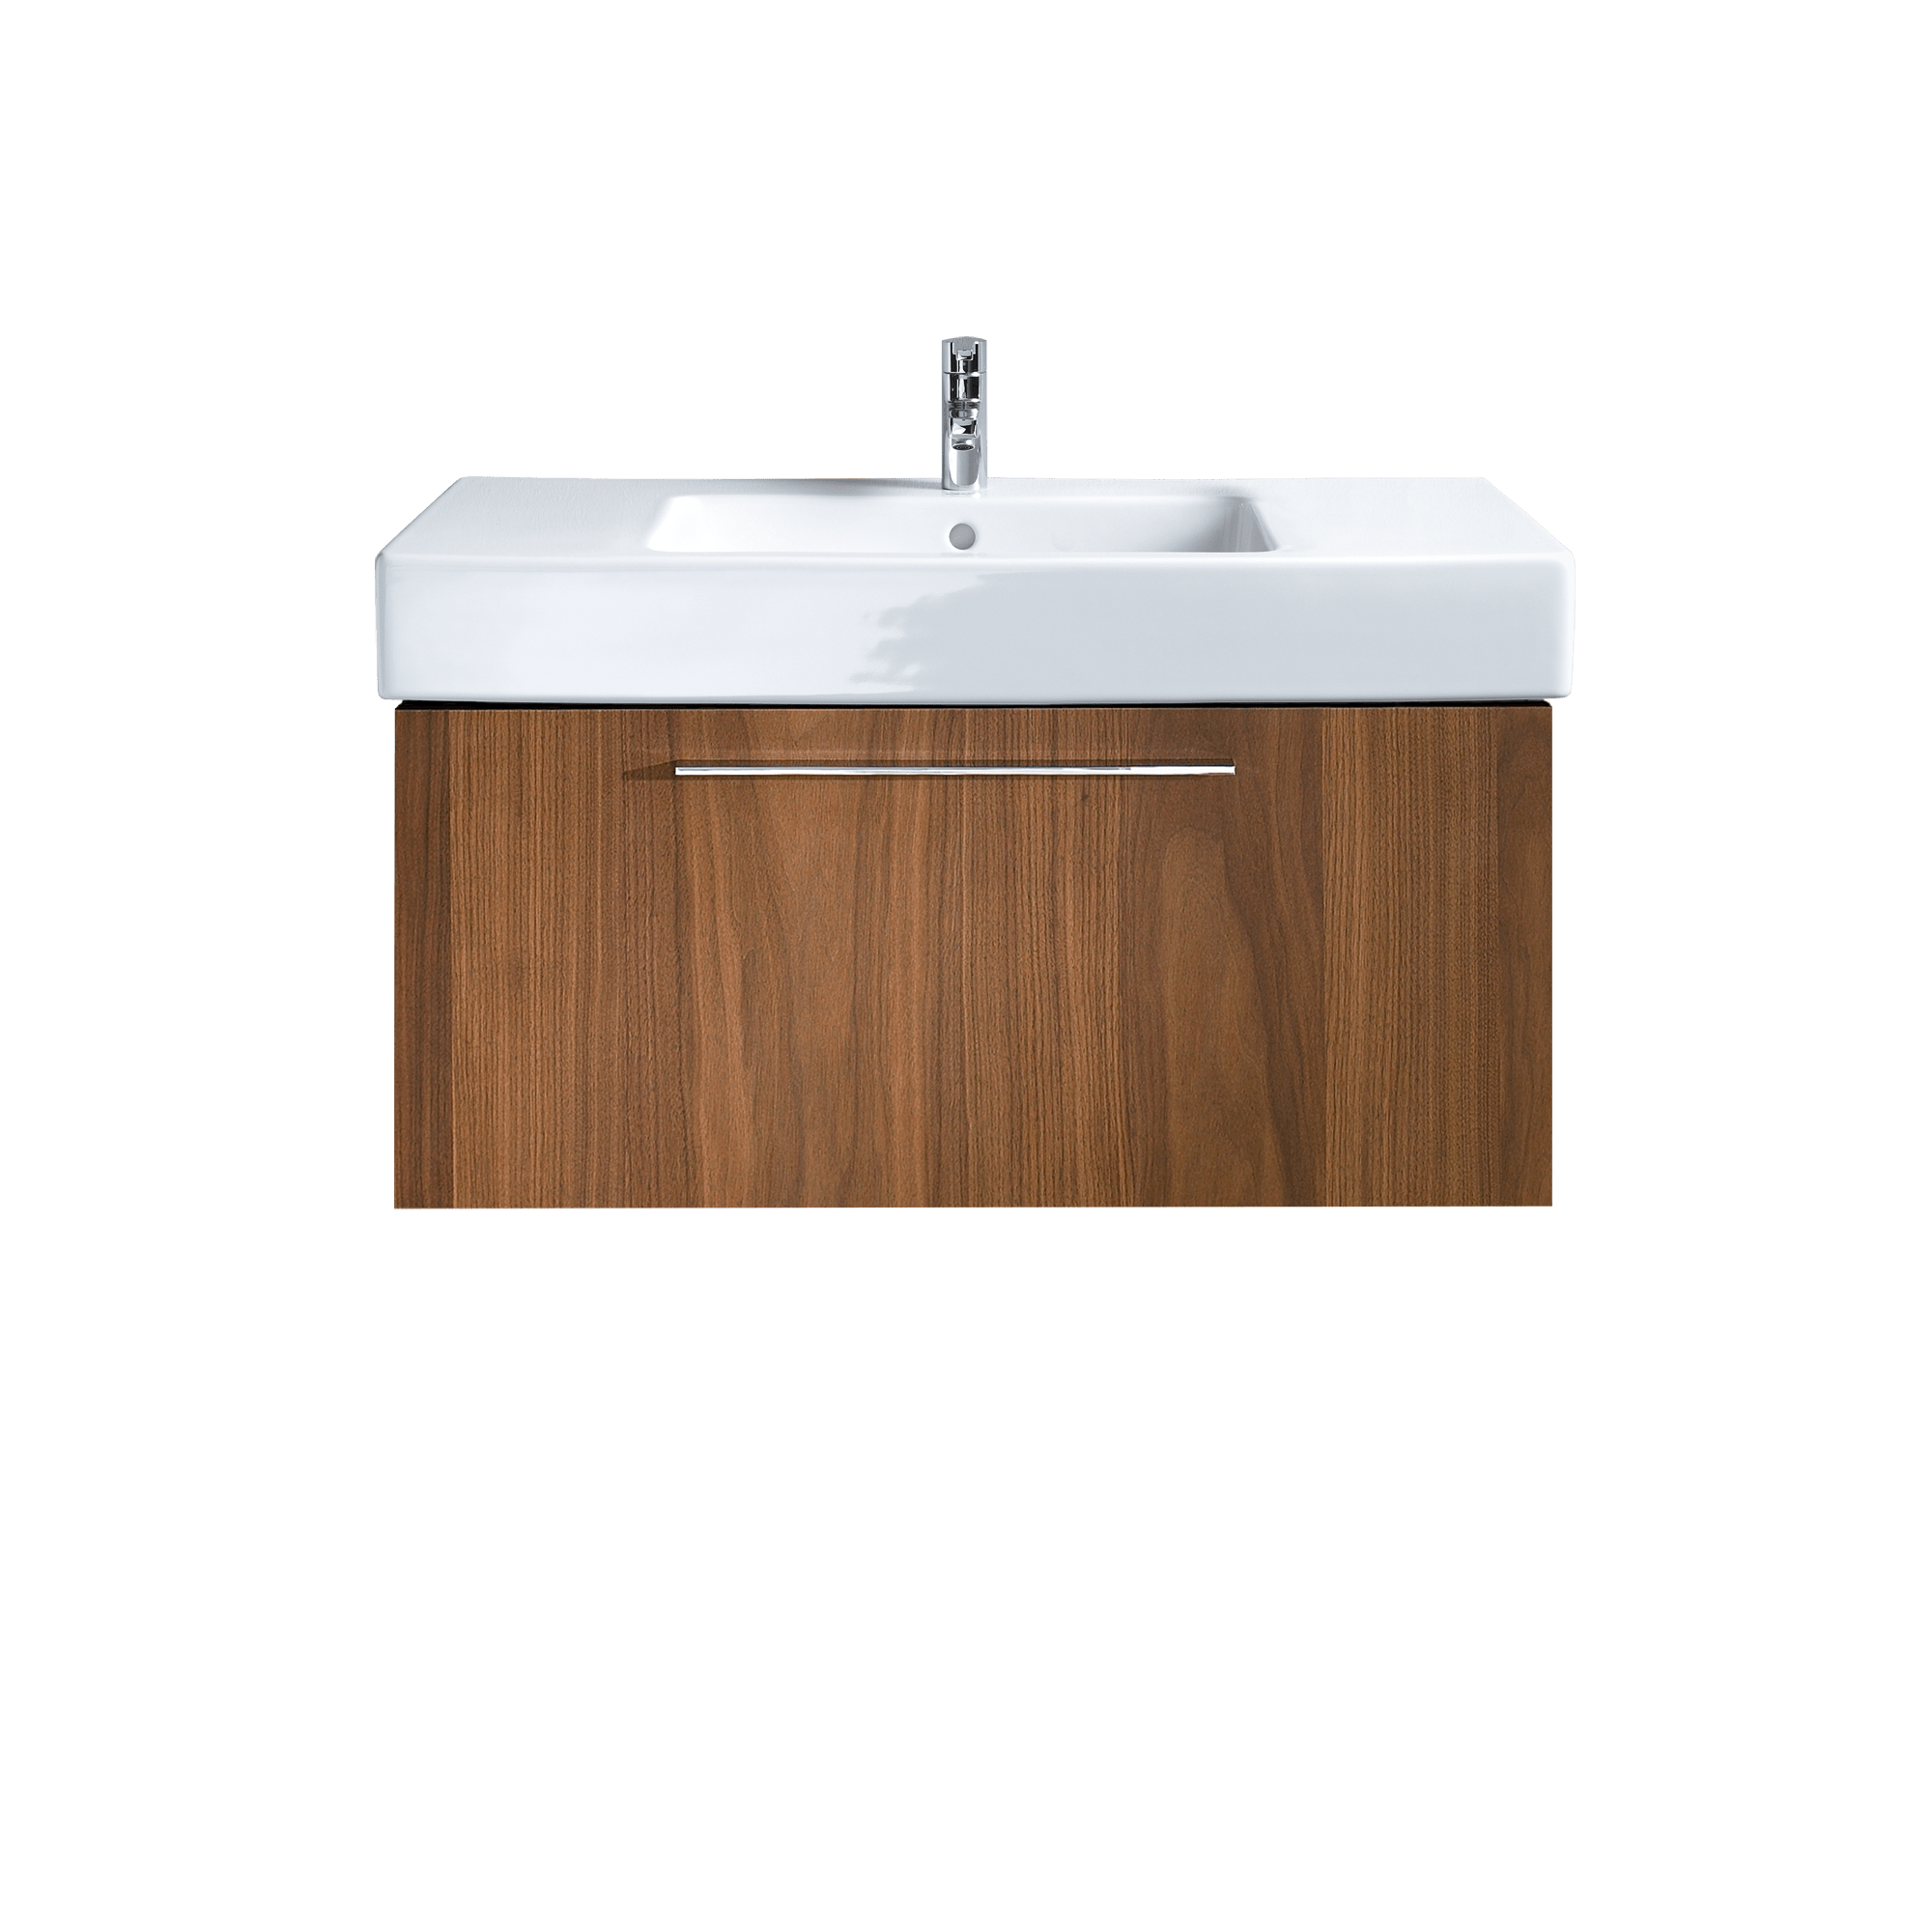 Duravit - Bathroom Fixtures | QualityBath.com